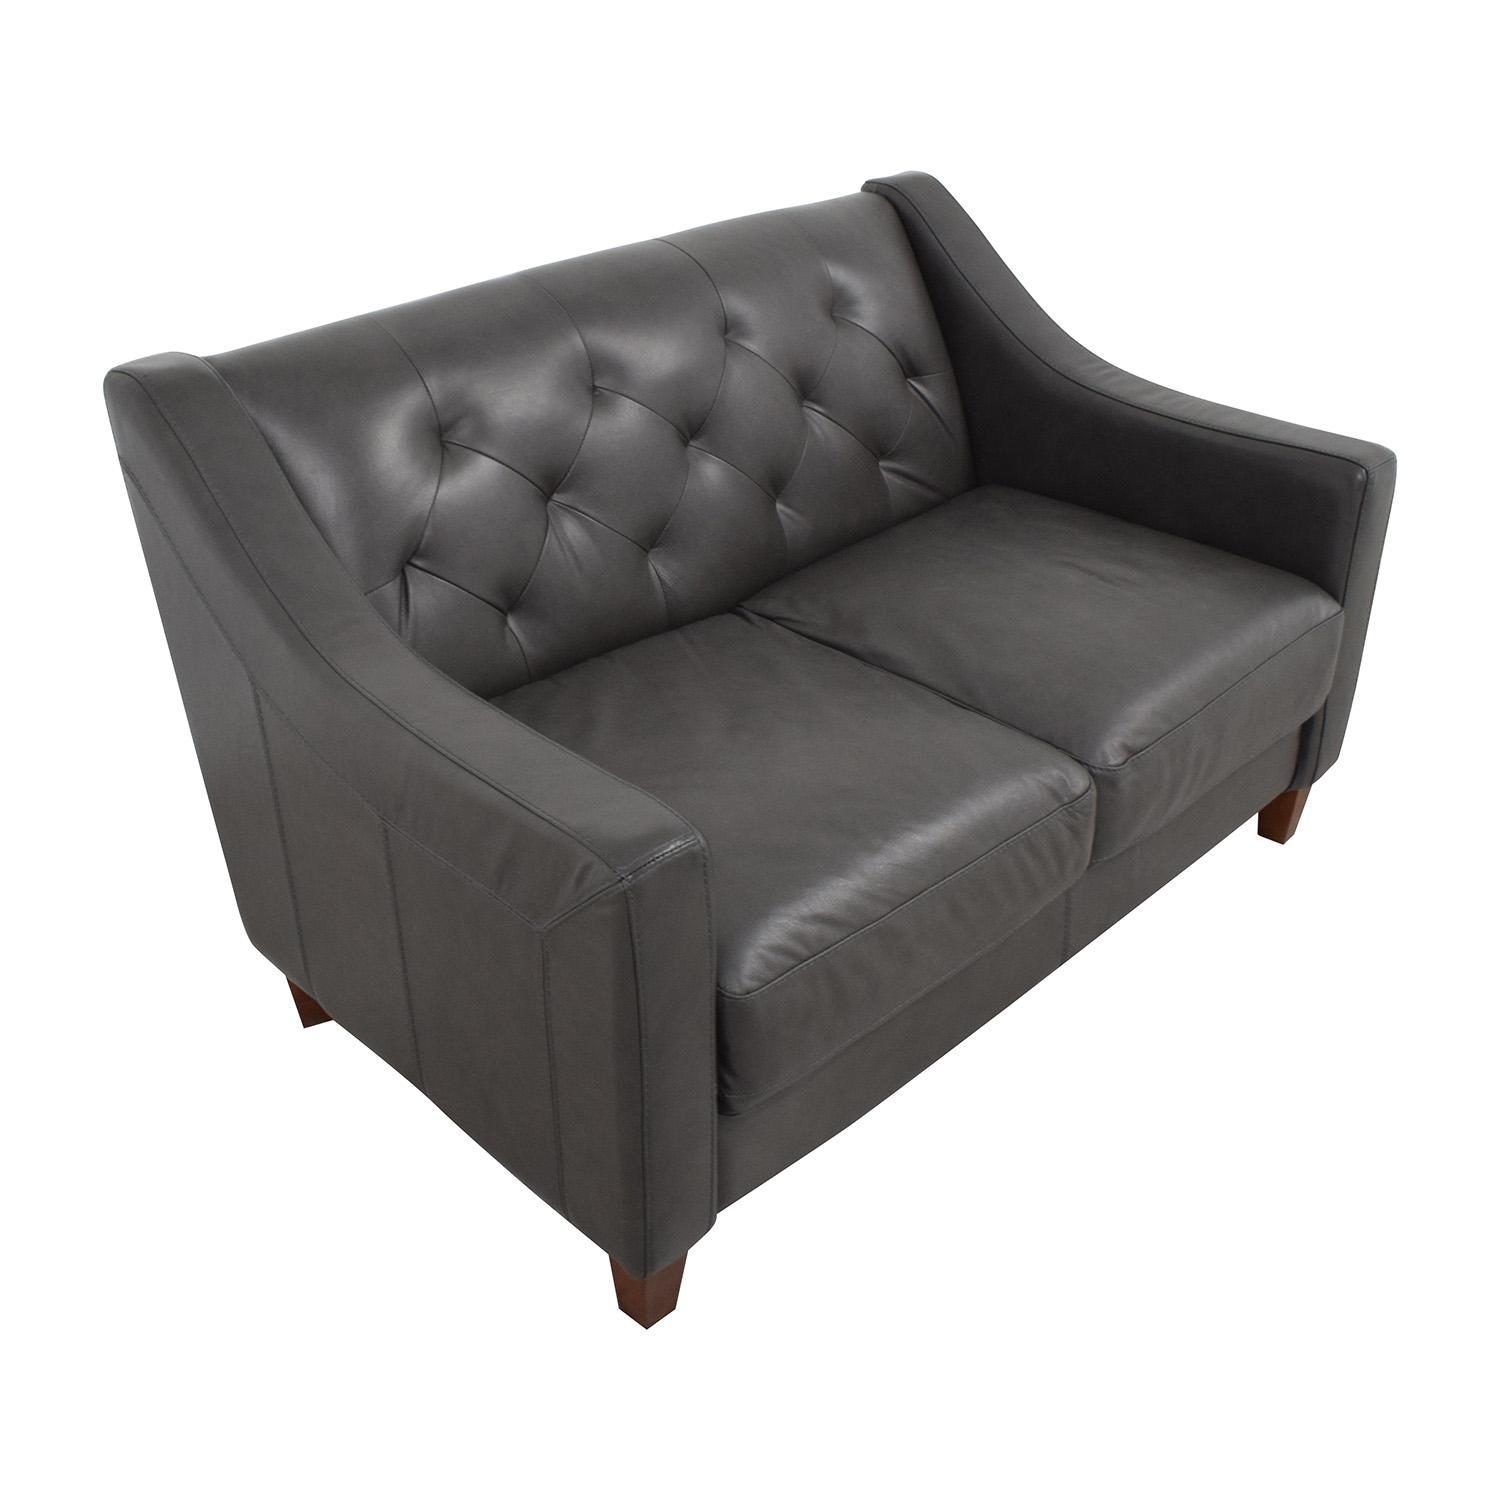 Macys Macys Tufted Leather Loveseat for sale